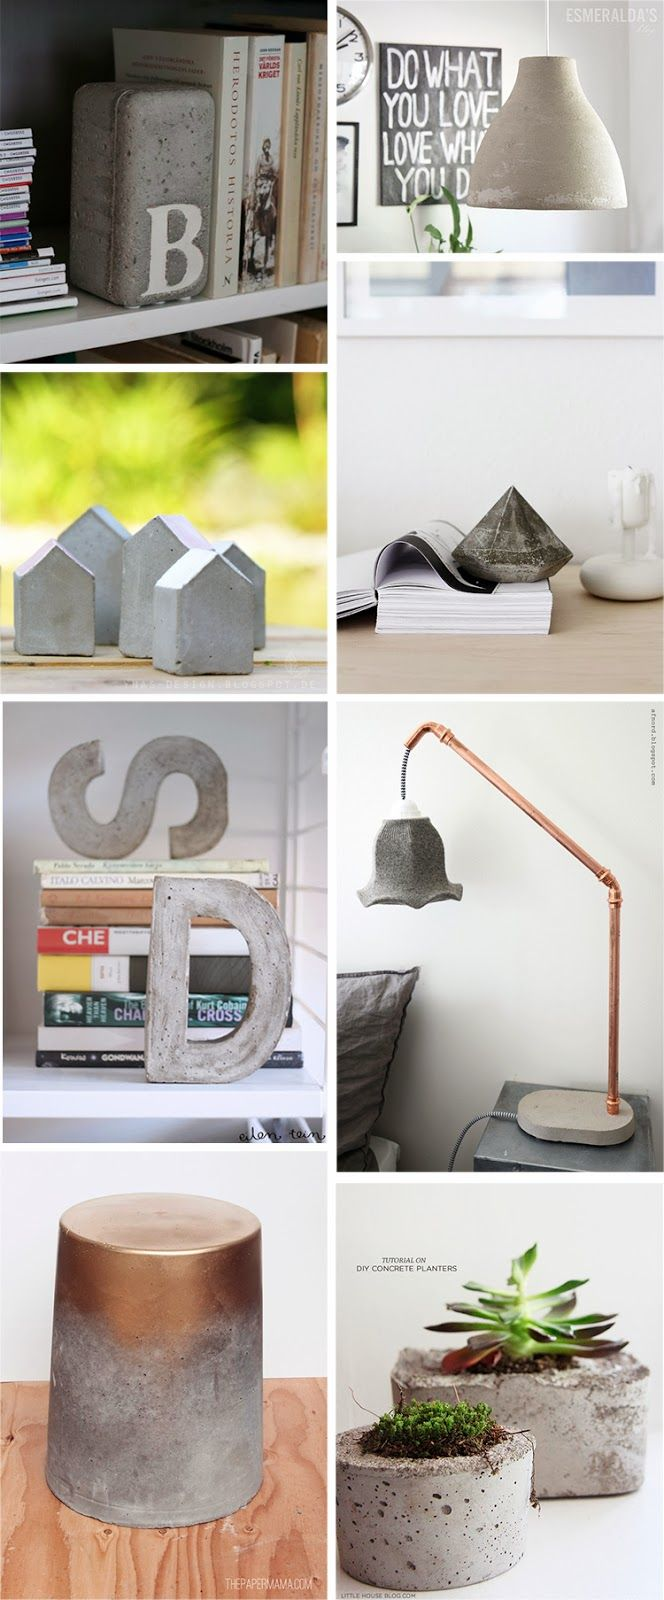 DIY Monday # Concrete - Ohoh Blog